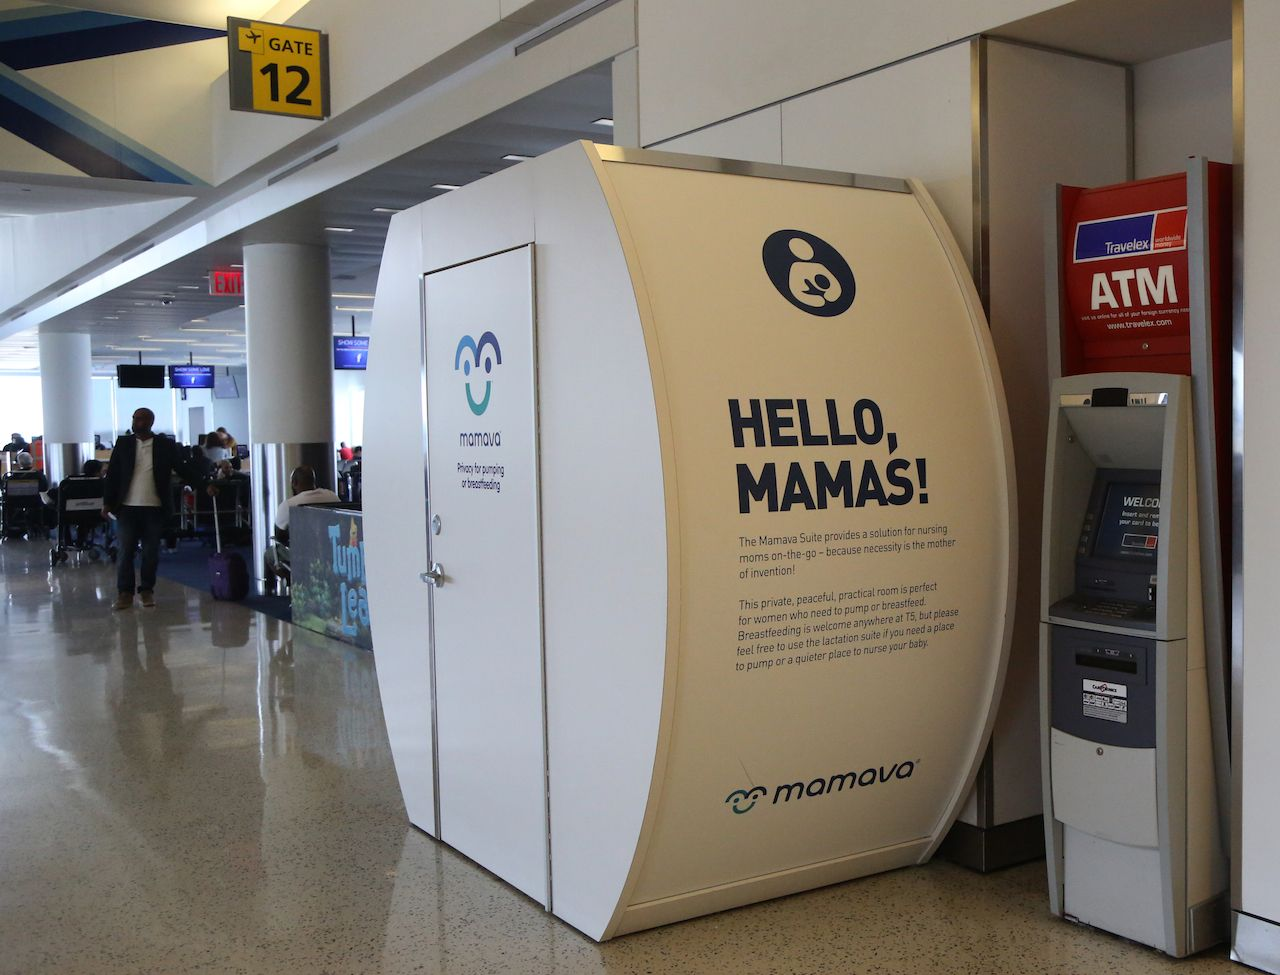 Mamava Suite is a place for women to pump or breastfeed inside of JetBlue Terminal 5 at John F Kennedy International Airport in New York